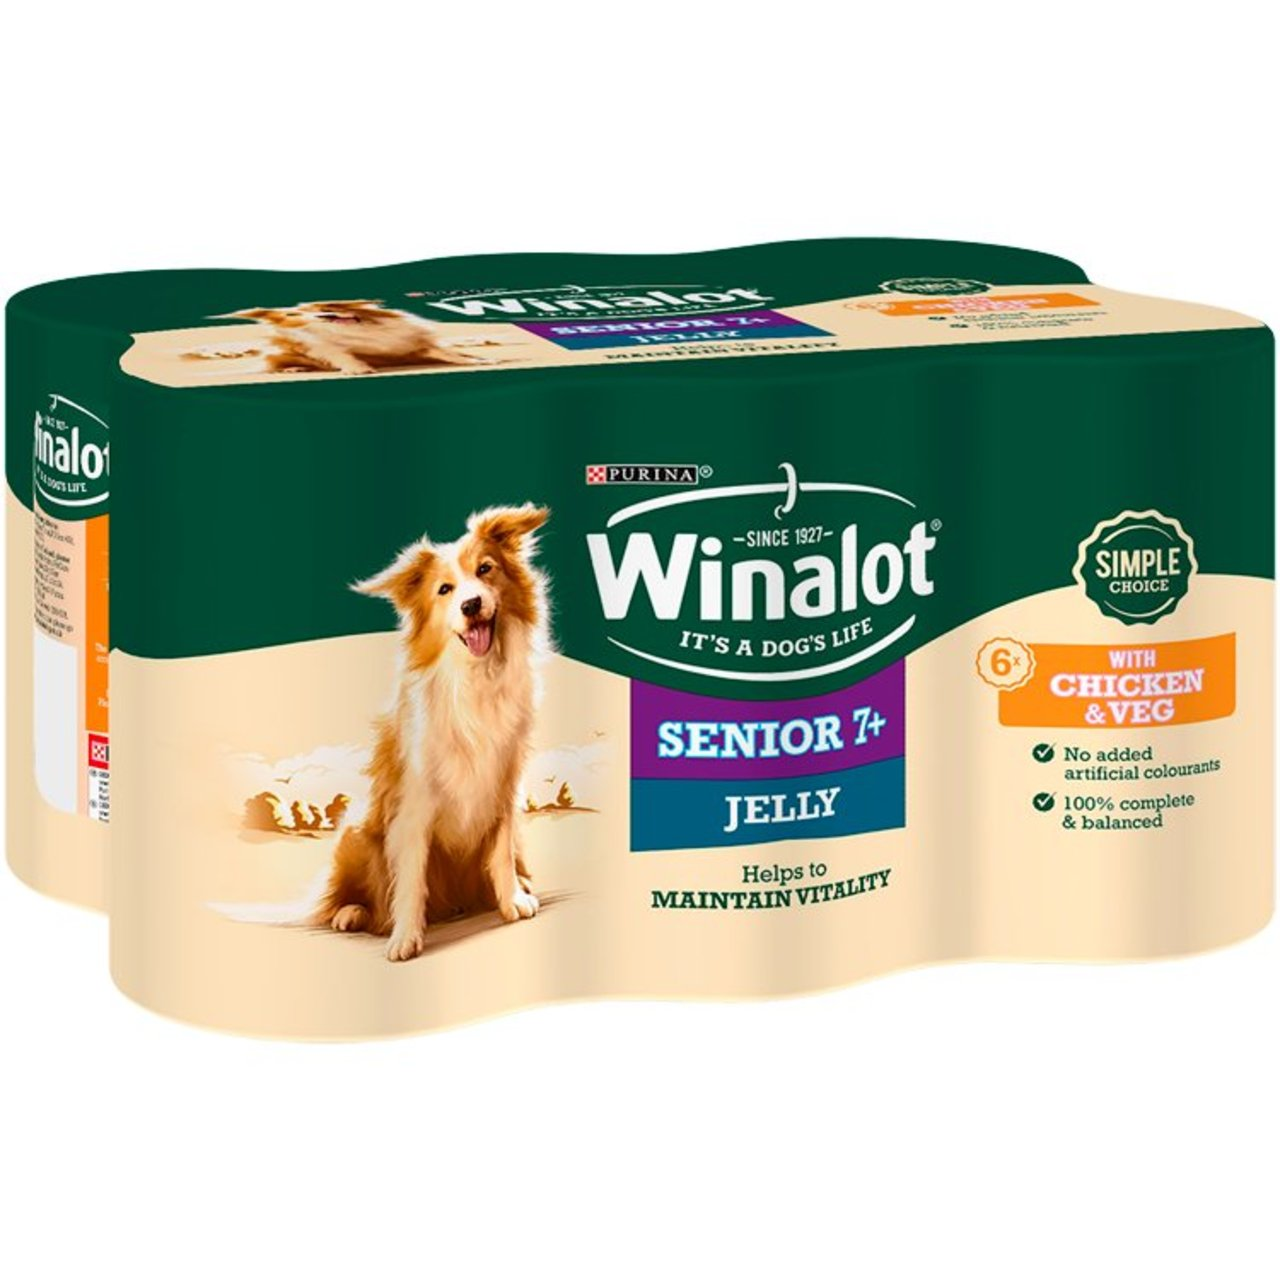 An image of Winalot 7+ Dog Food Chicken & Veg in Jelly